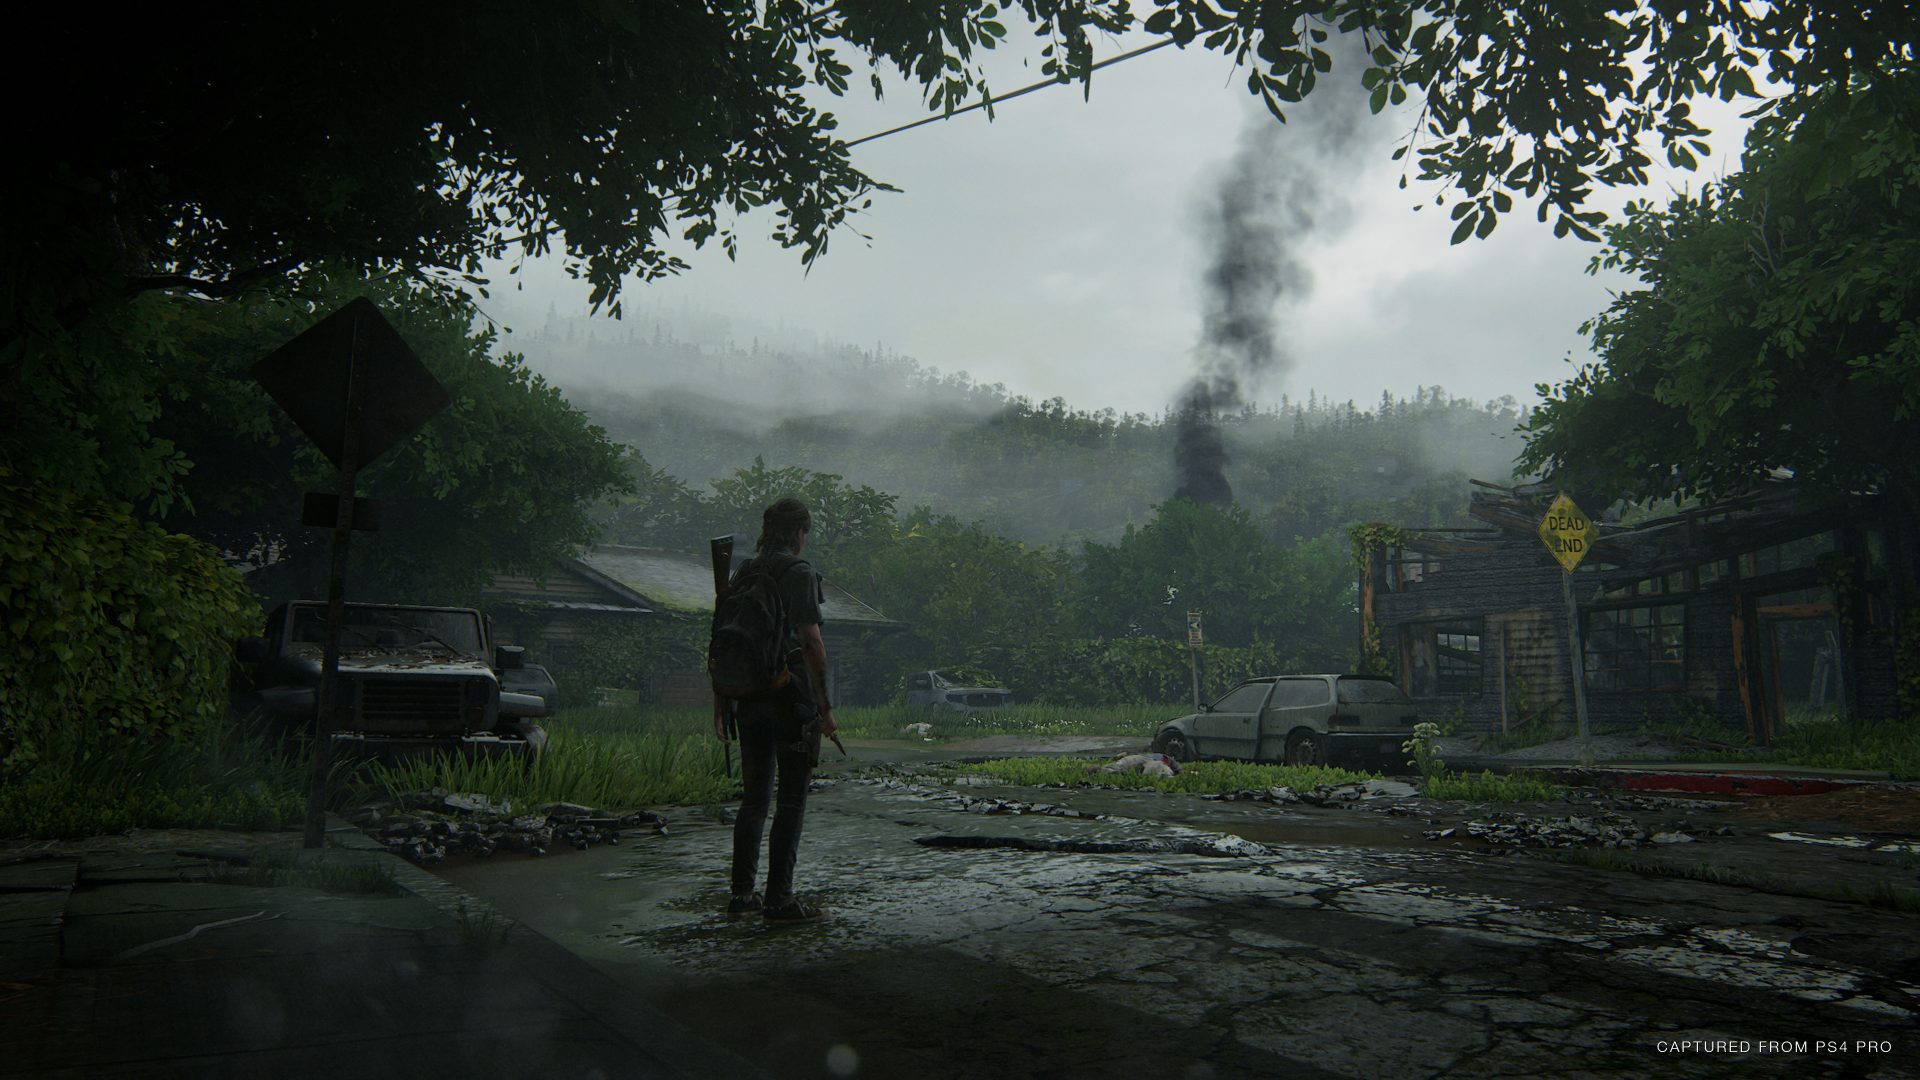 Game footage from The Last of Us II which has been indefinitely delayed